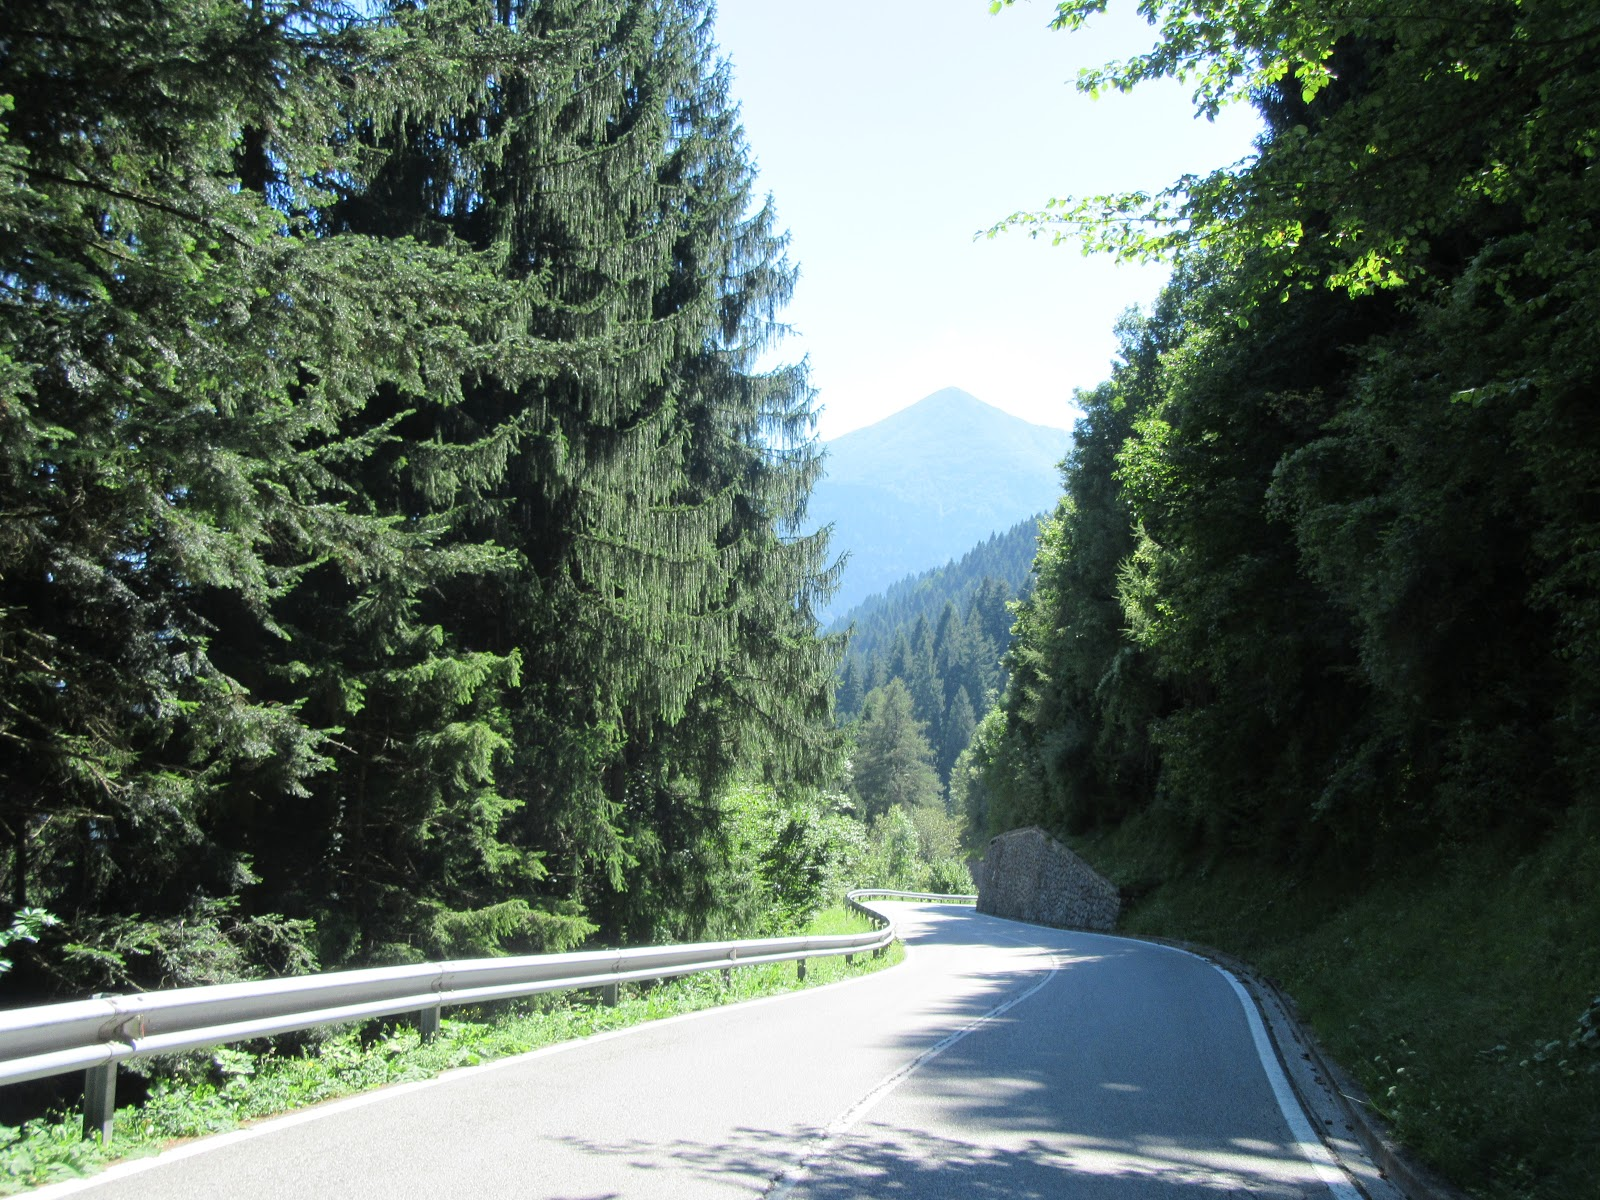 Cycling Cycling Monte Zoncolan from Sutrio - road with trees bordering it and mountains in background